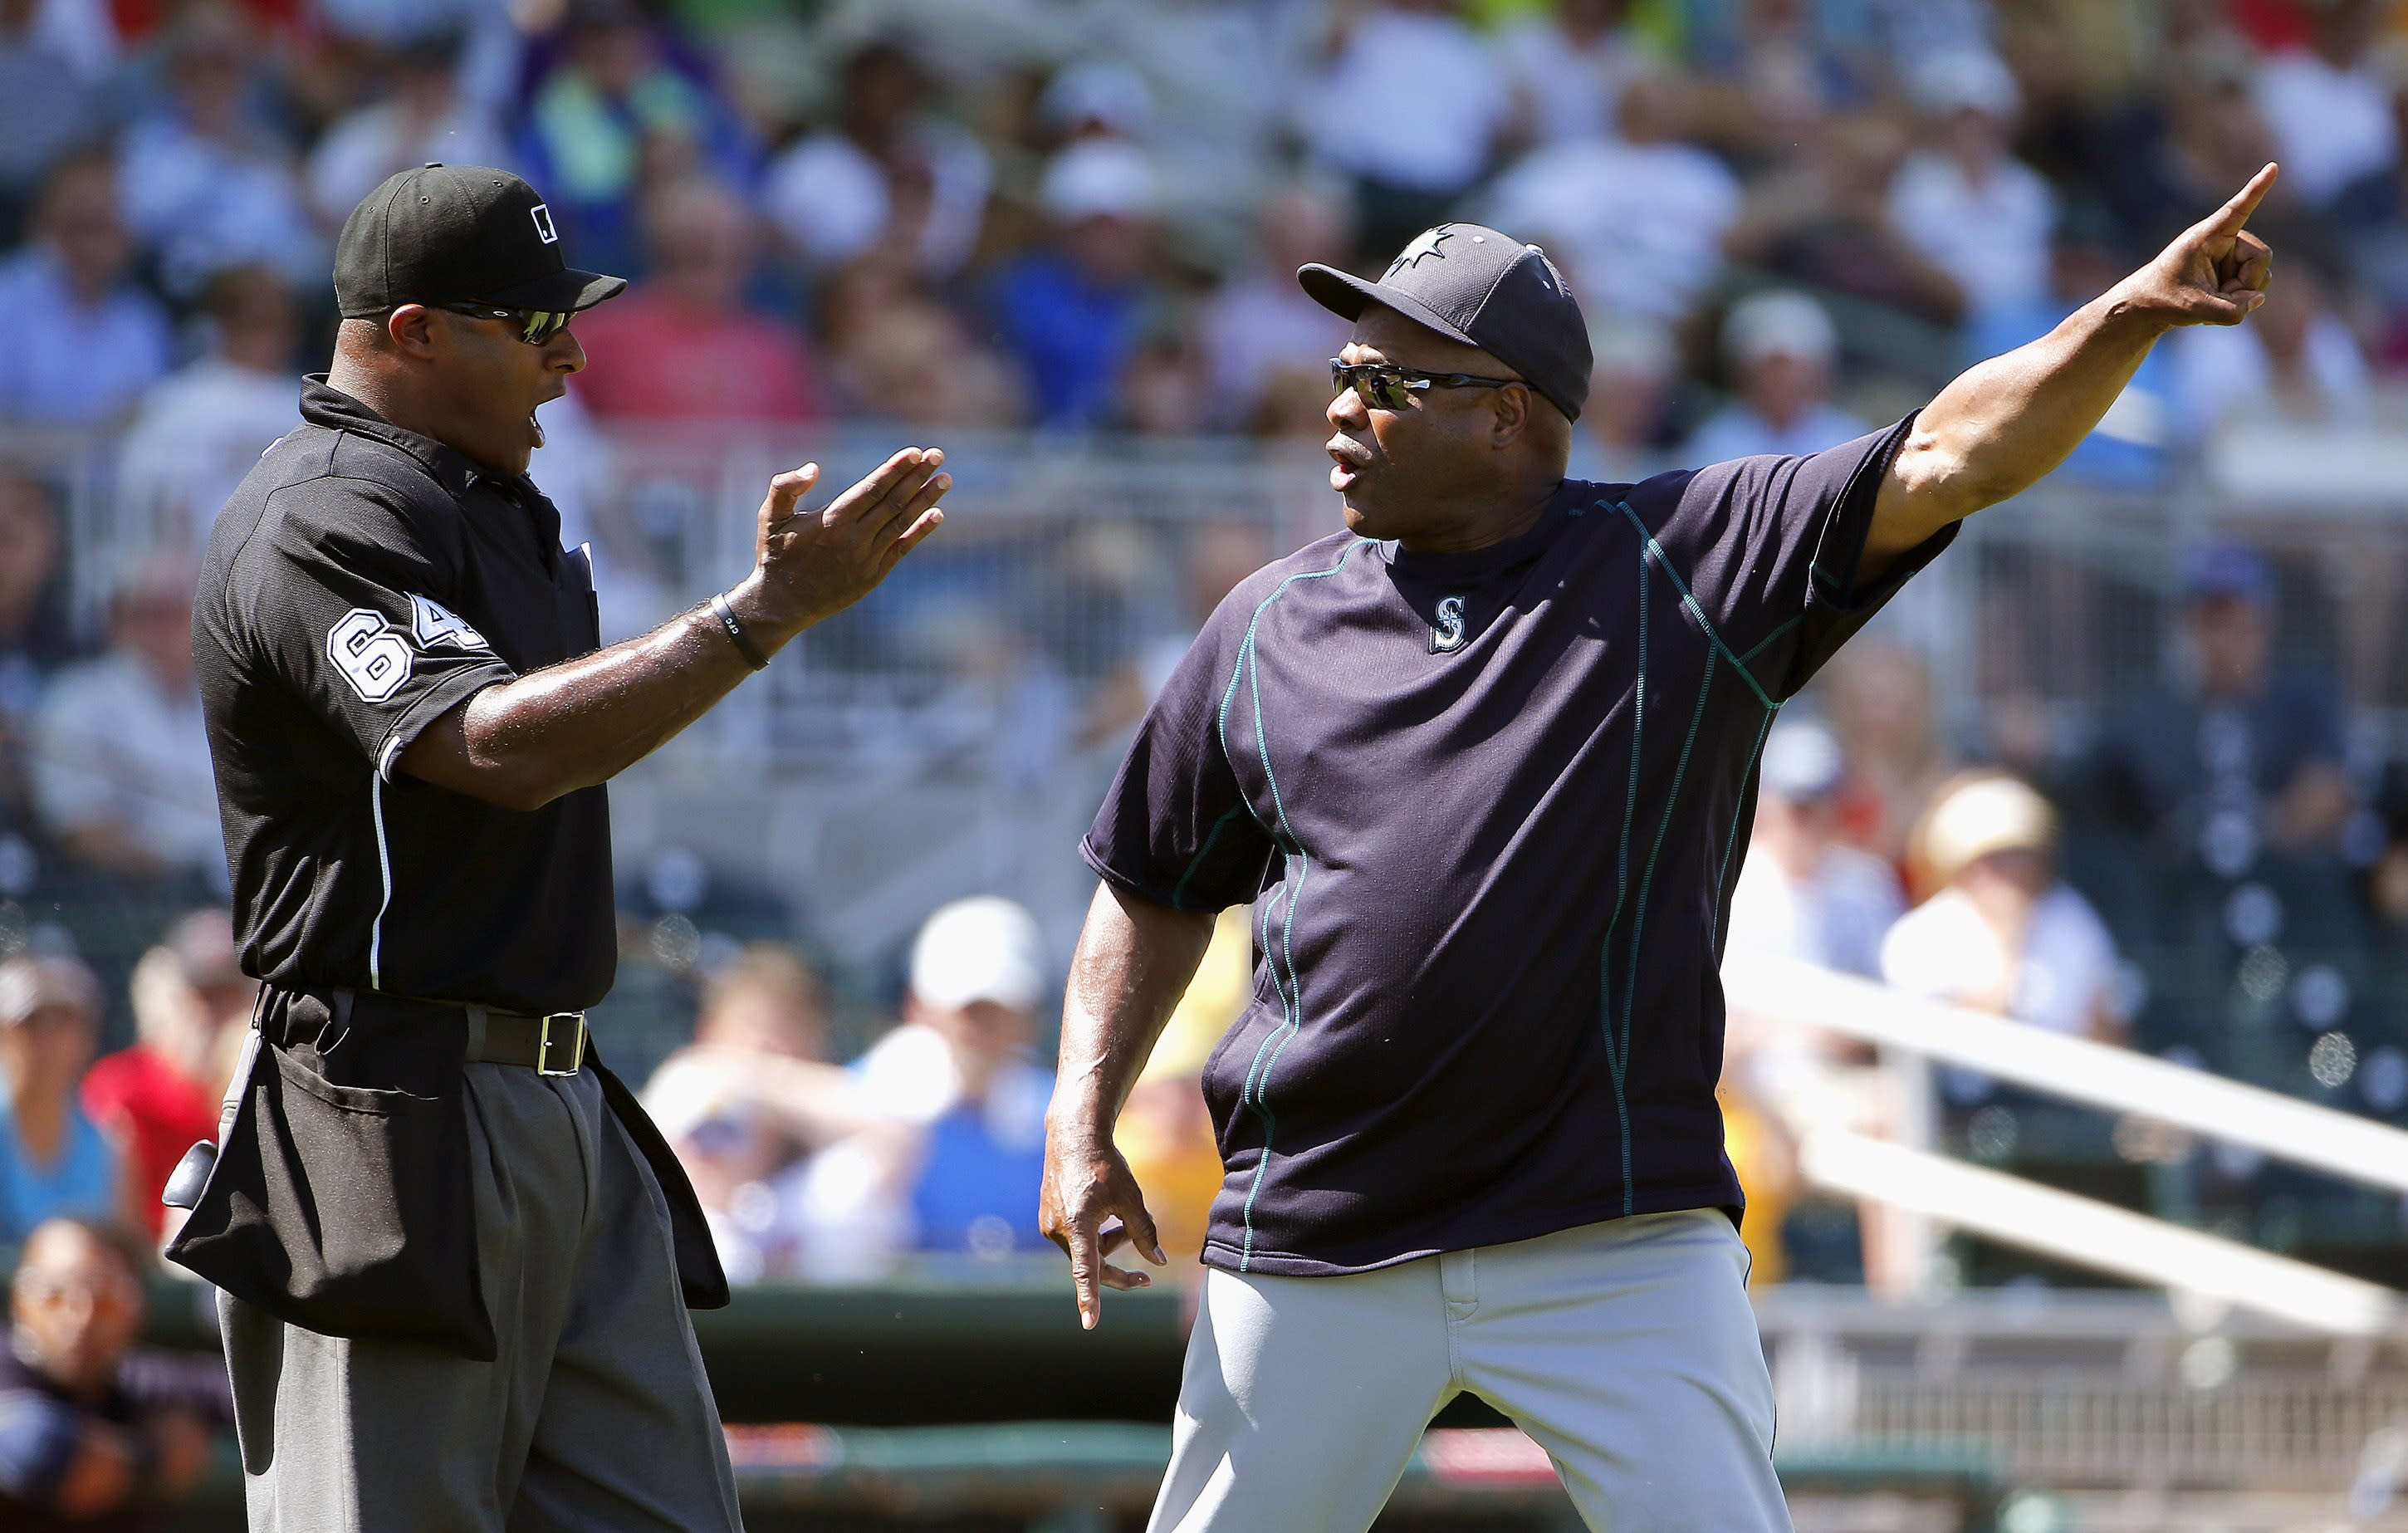 Lloyd McClendon gets ejected, goes on great on-field rant (Video)